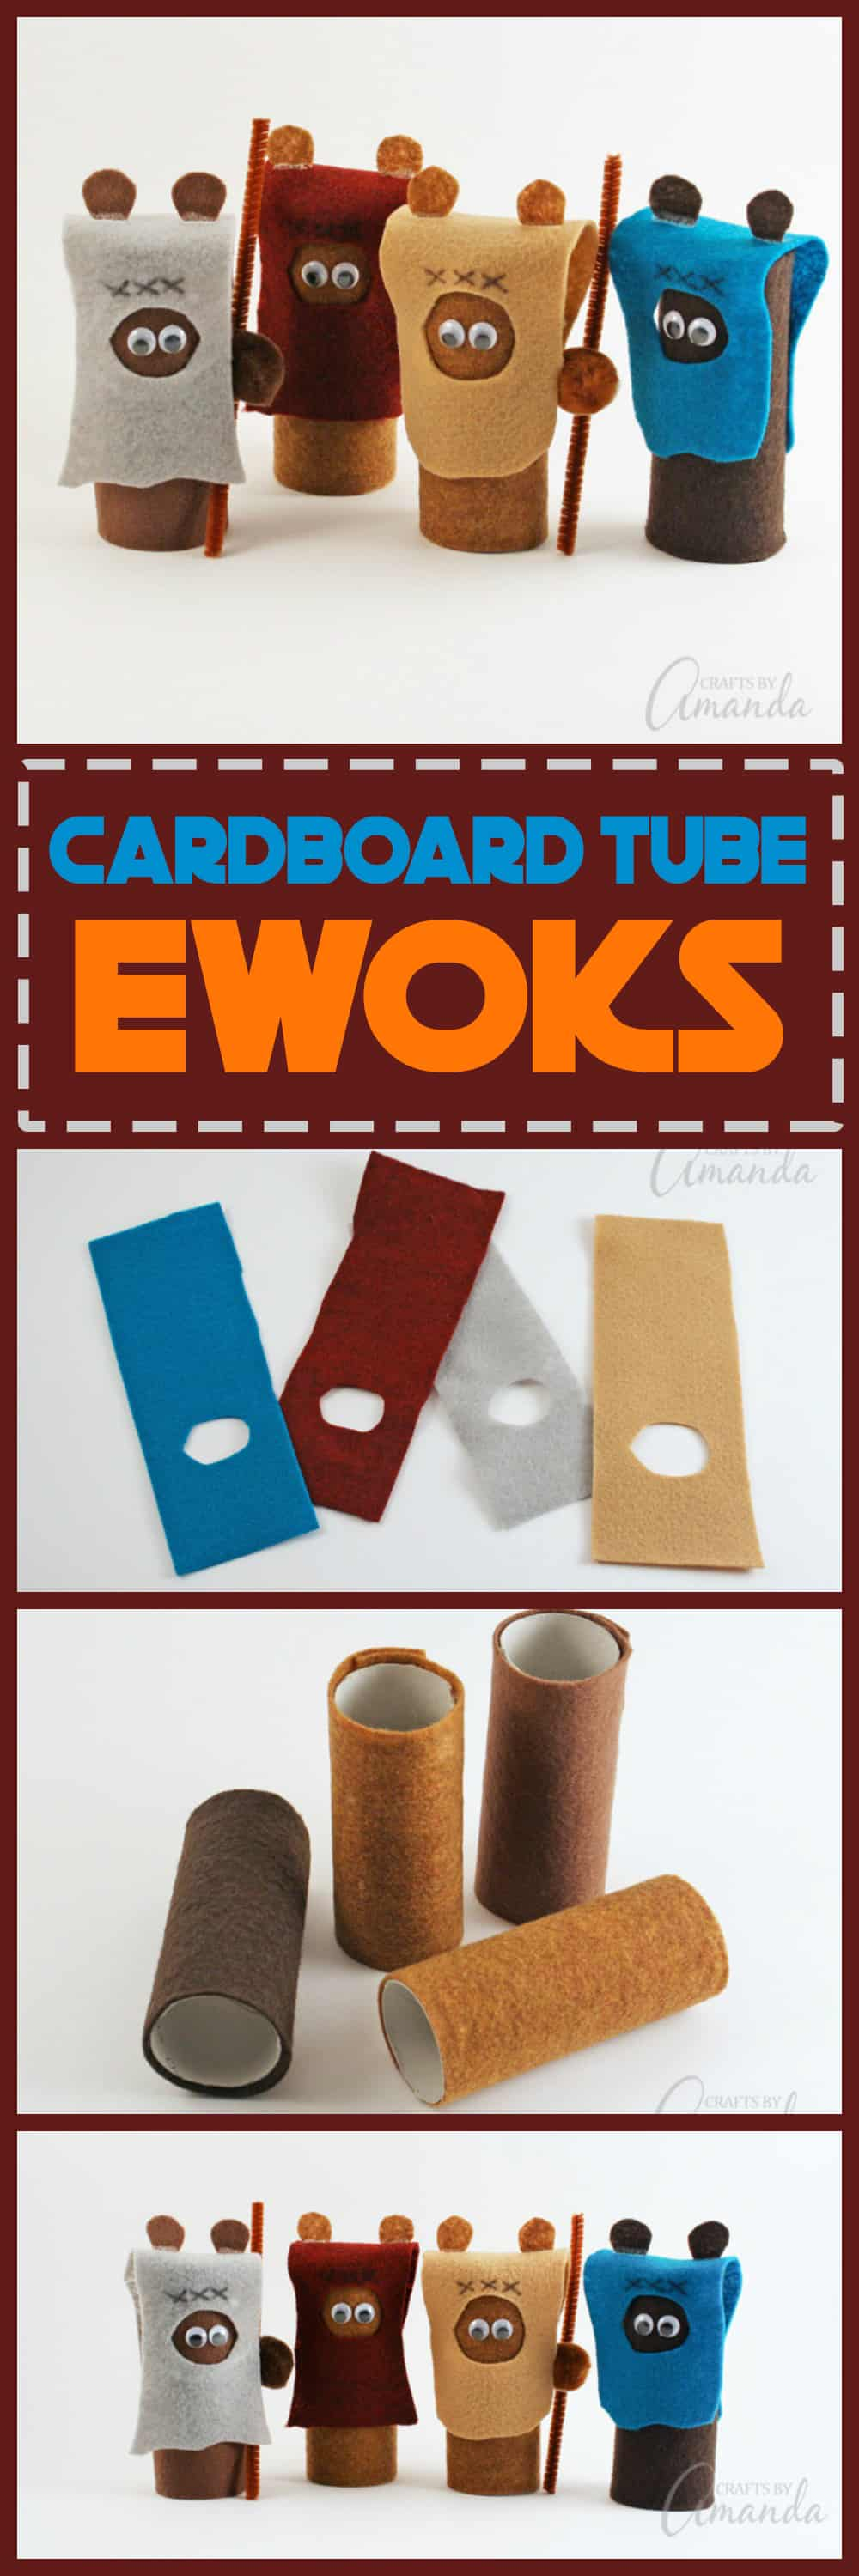 Are your kids Star Wars fans? These adorable cardboard tube ewoks are perfect! Not only a fun craft for kids but also great to play with when you're done!